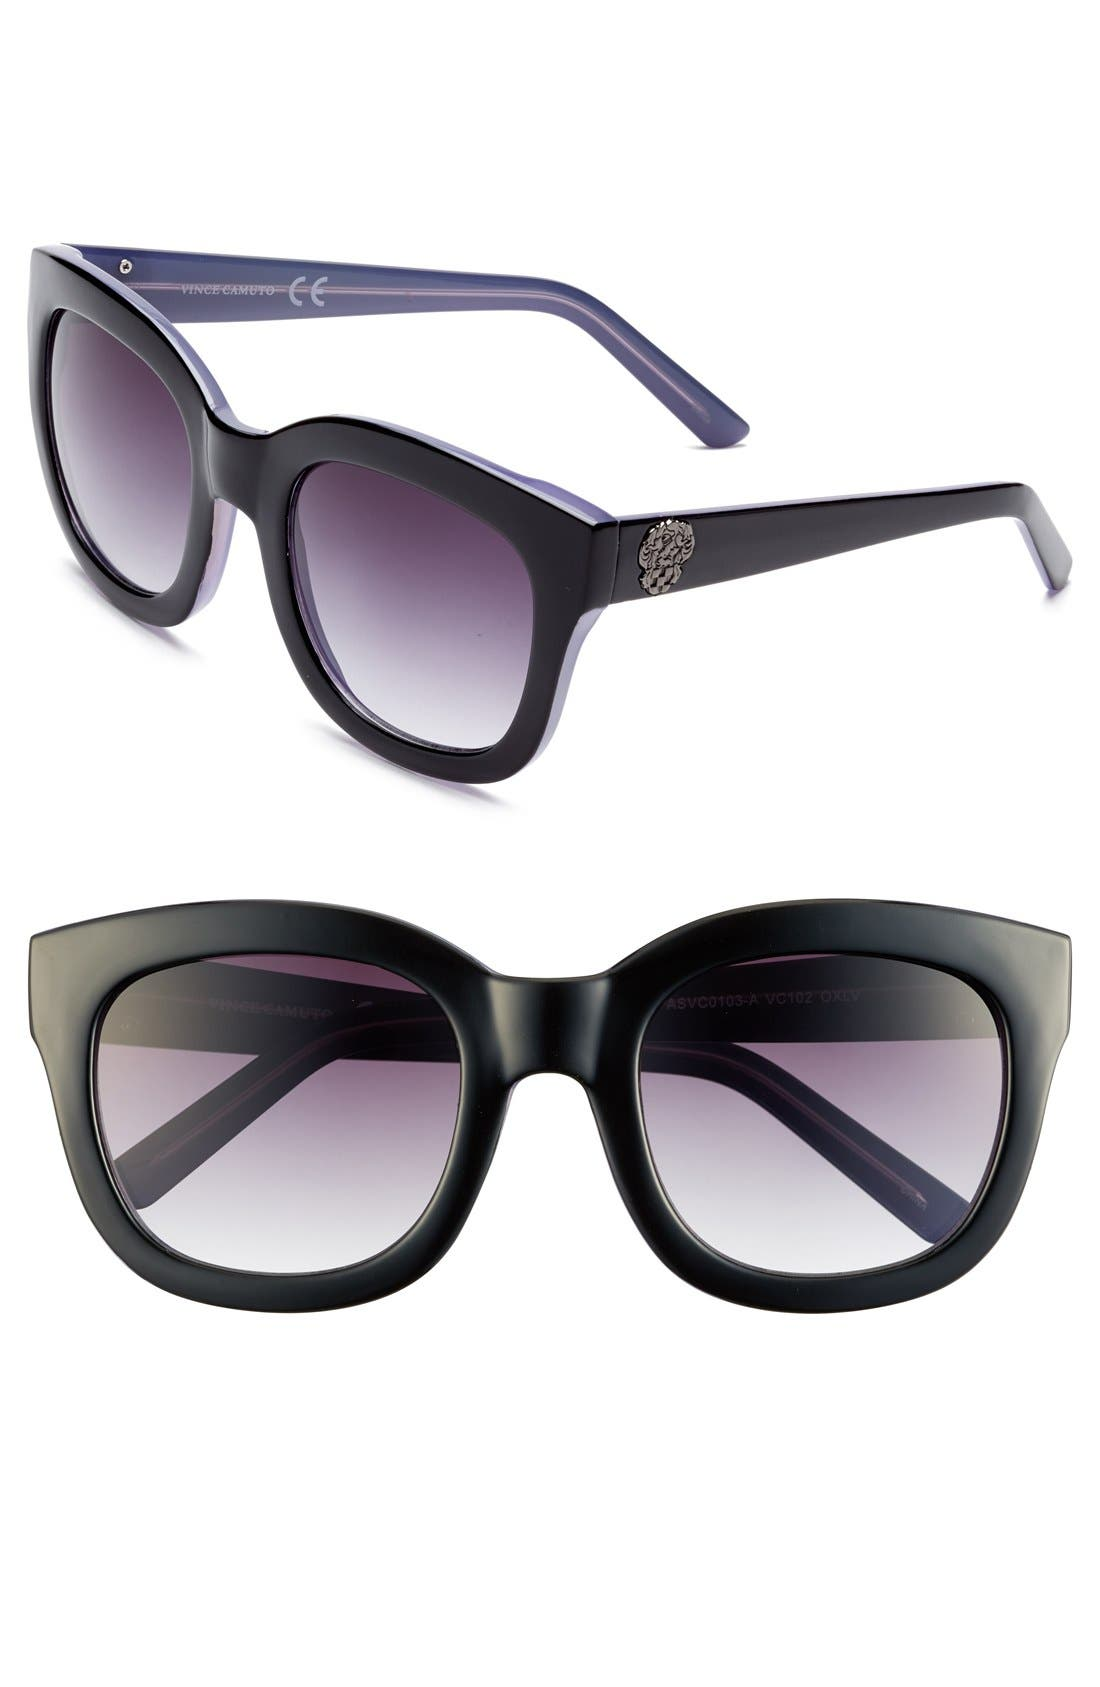 Alternate Image 1 Selected - Vince Camuto 54mm Oversized Cat Eye Sunglasses (Online Only)